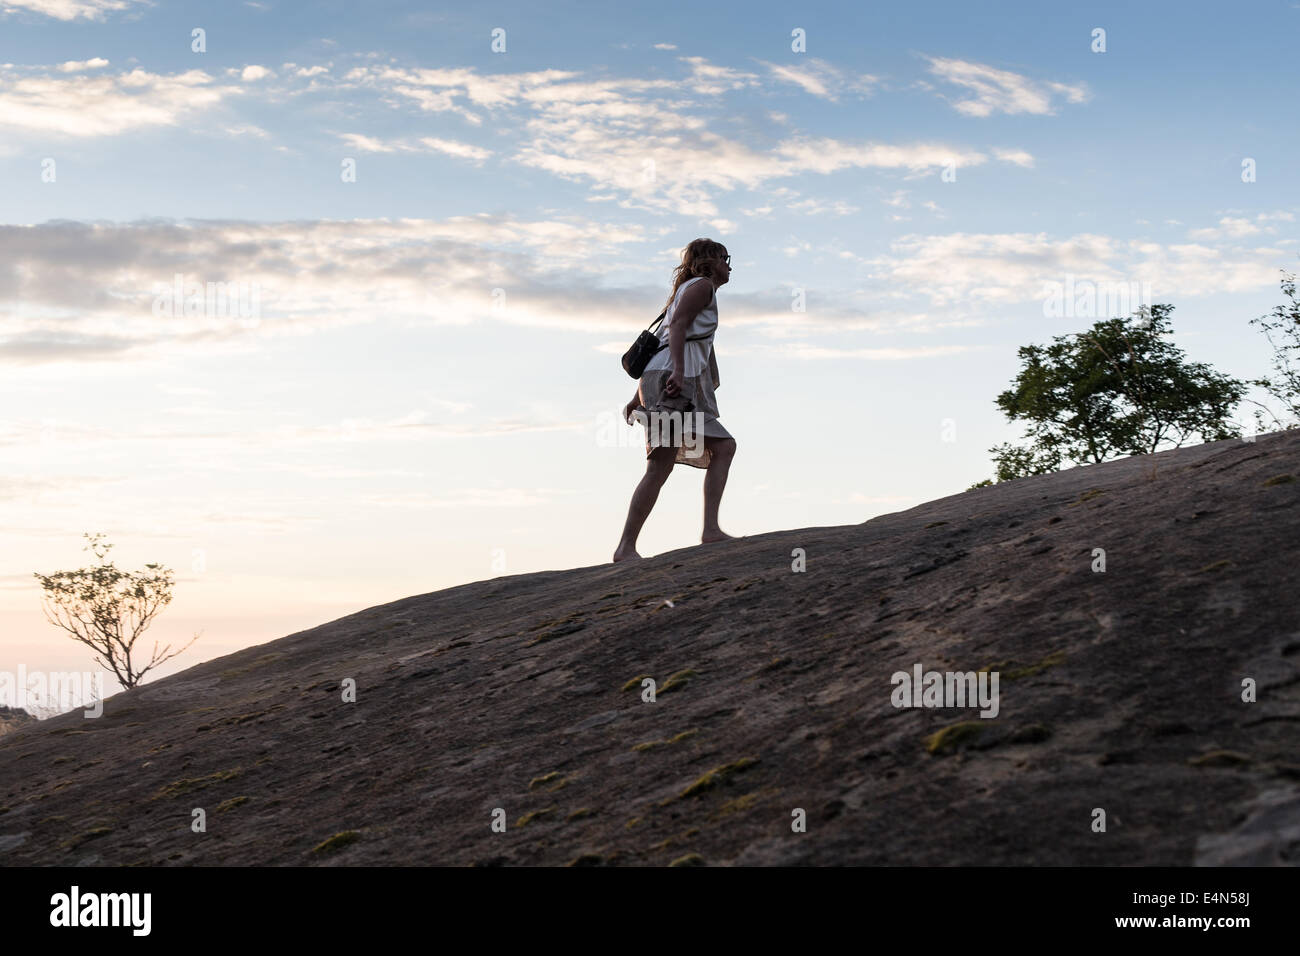 Woman wearing dress walking up hill holding shoes en mains comme le soleil se couche Photo Stock